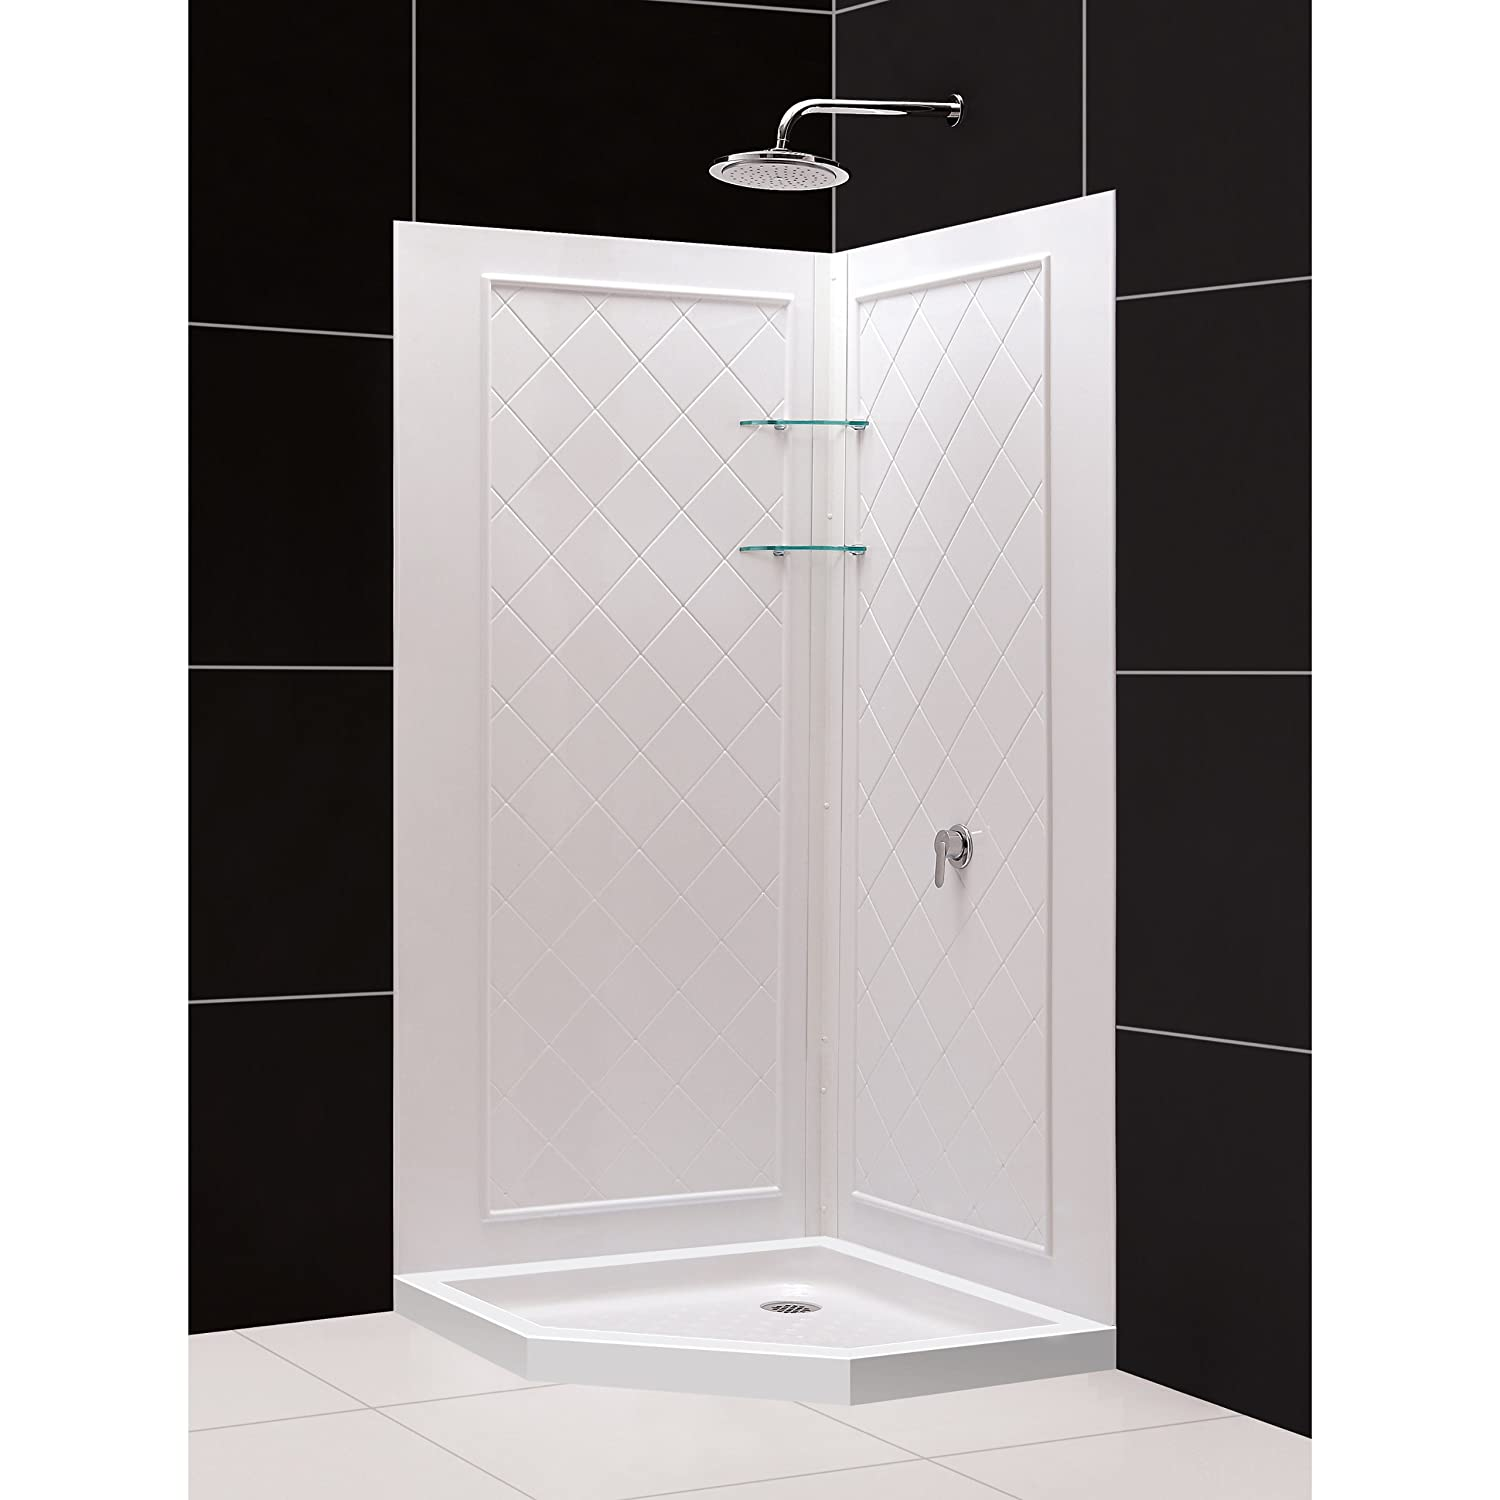 32 corner shower kit. DreamLine SlimLine 42  By Neo Shower Receptor And QWALL 4 Backwall Kit DL 6185 01 Wall Surrounds Amazon Com